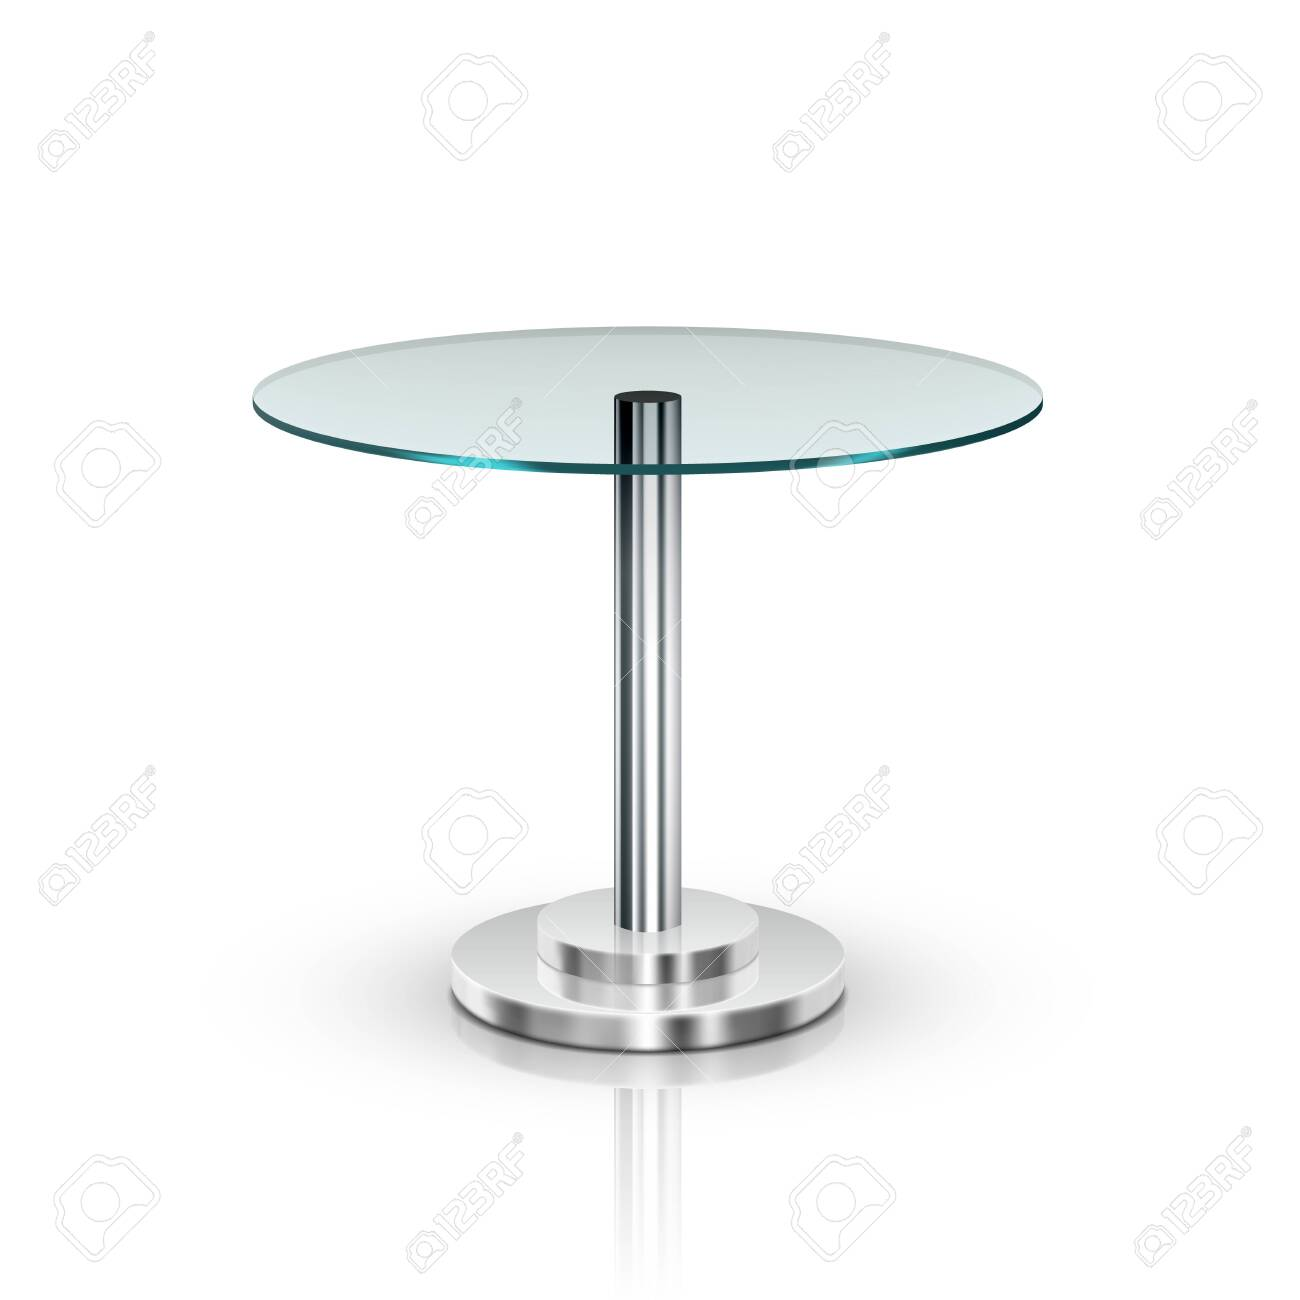 Empty Glass Round Office Table On Metal Leg - 152531370